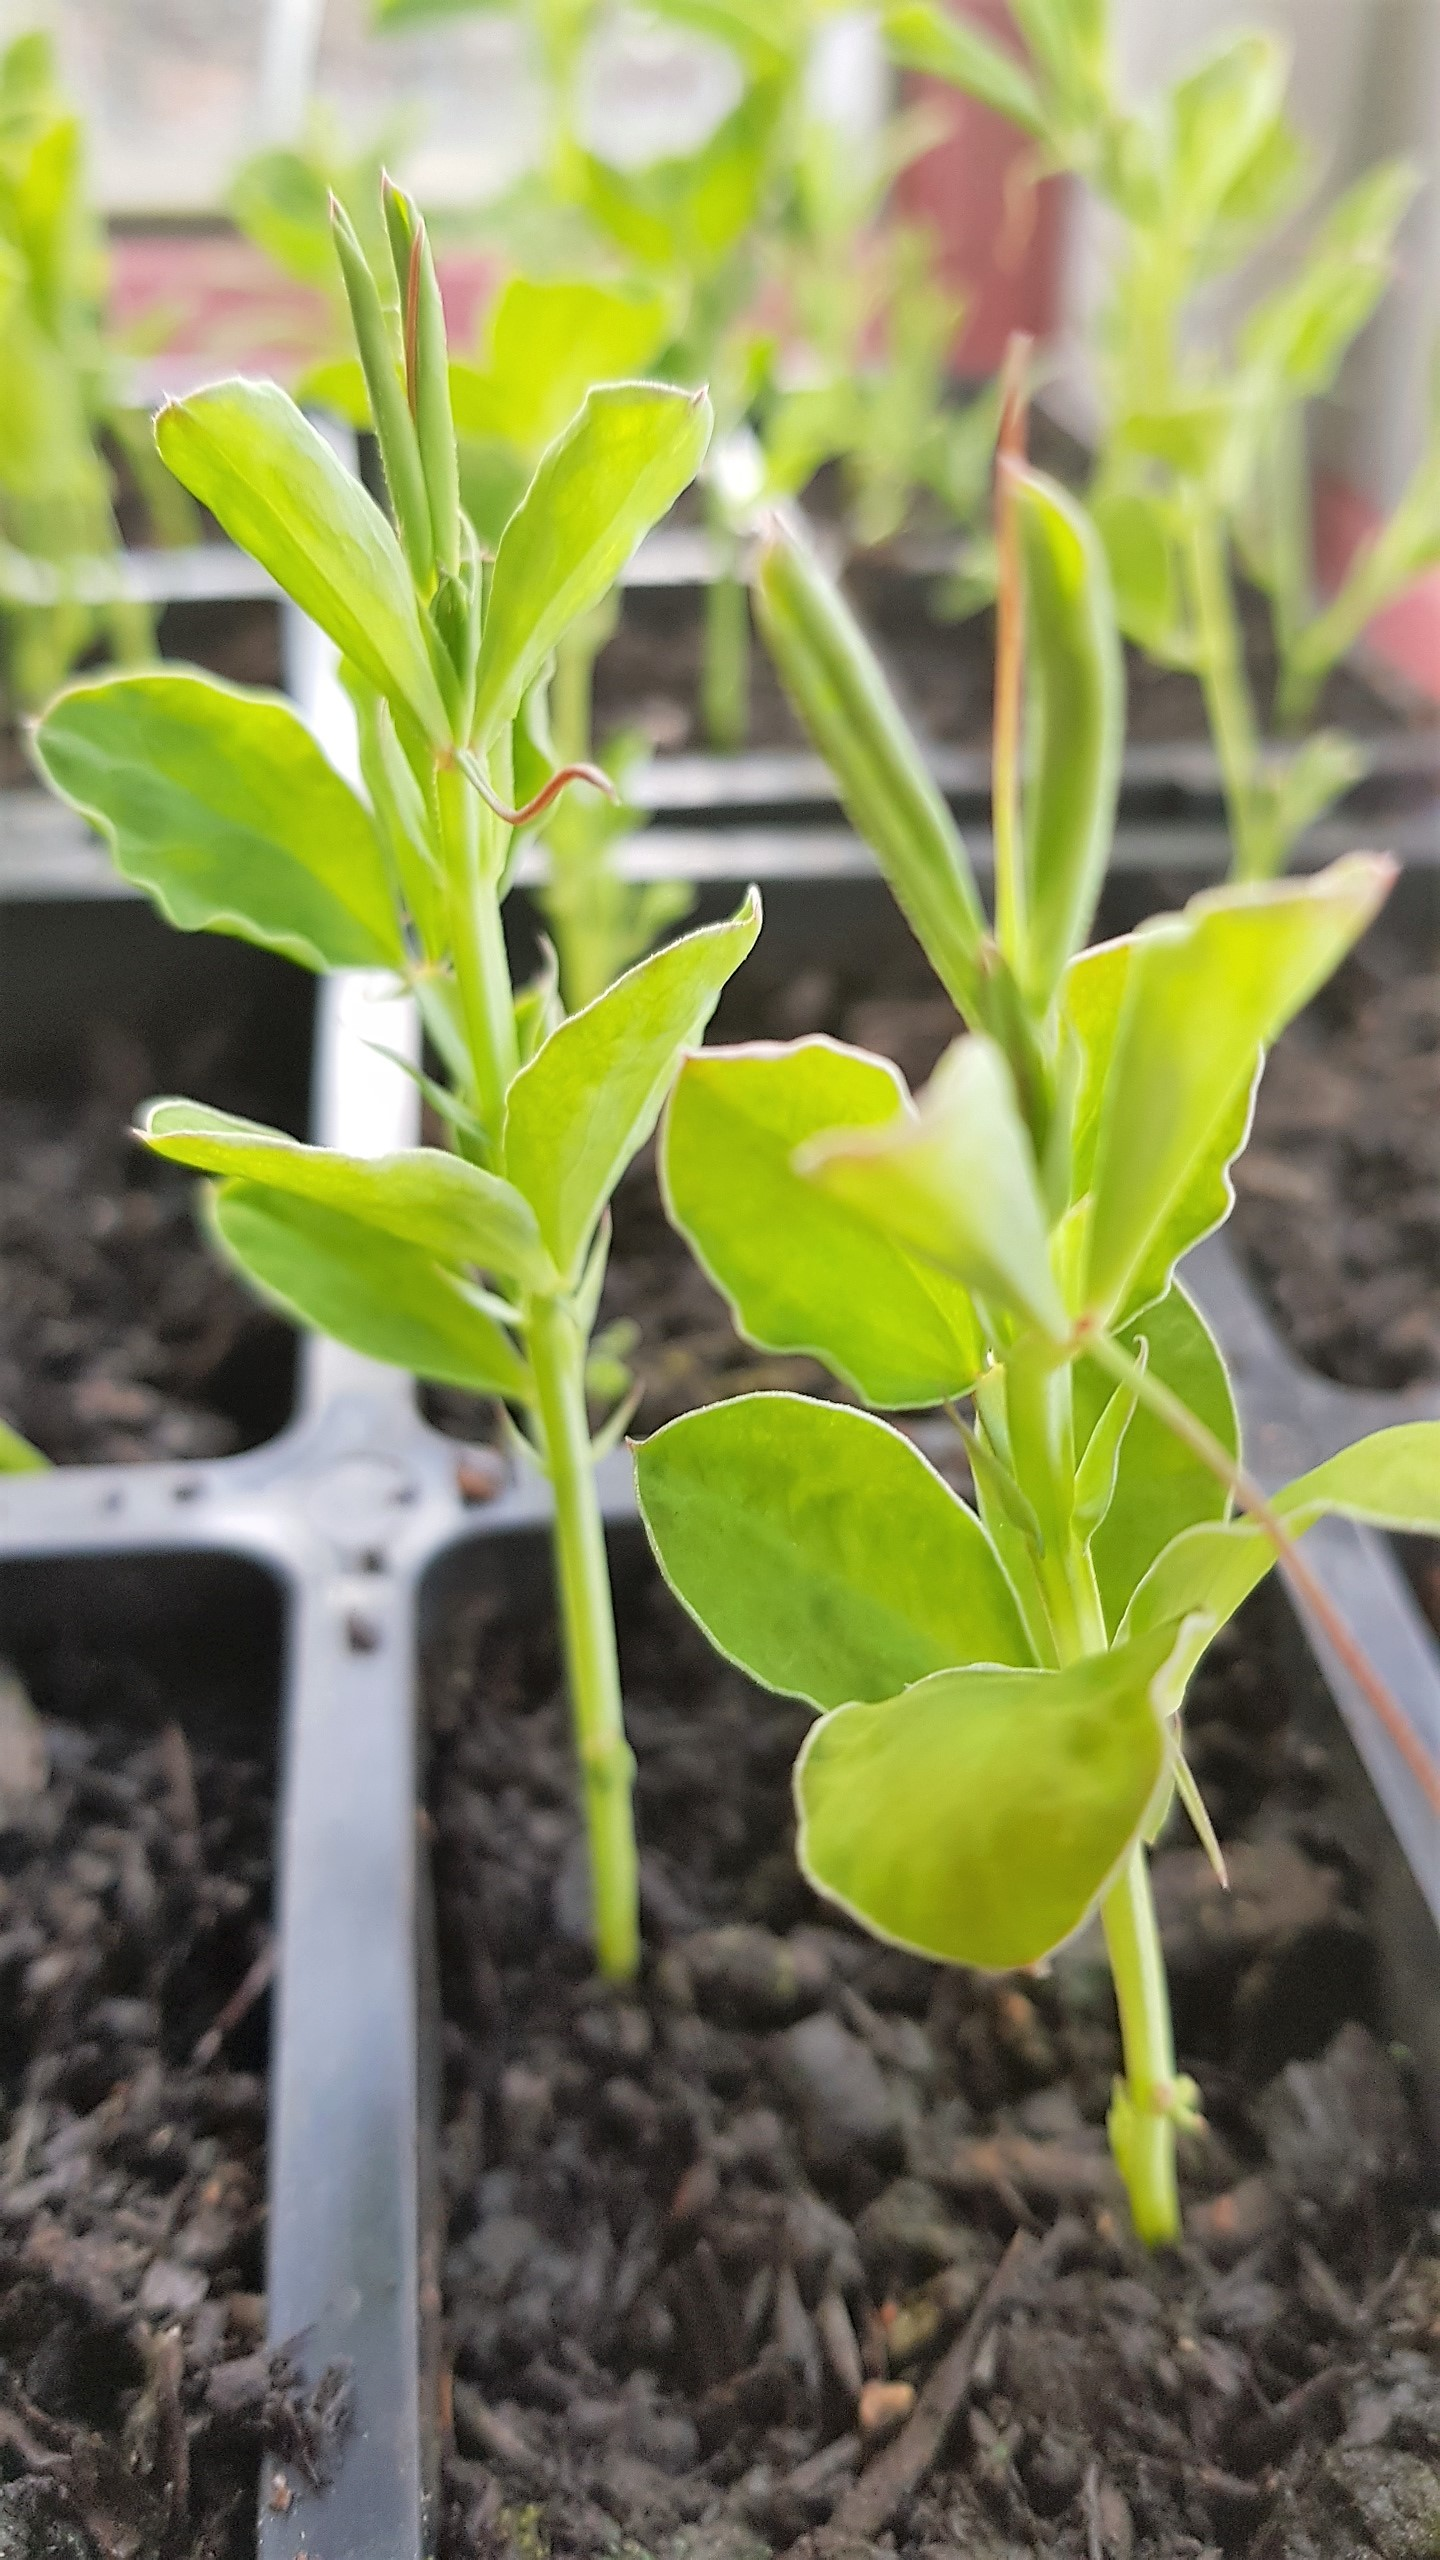 Young sweetpea plants